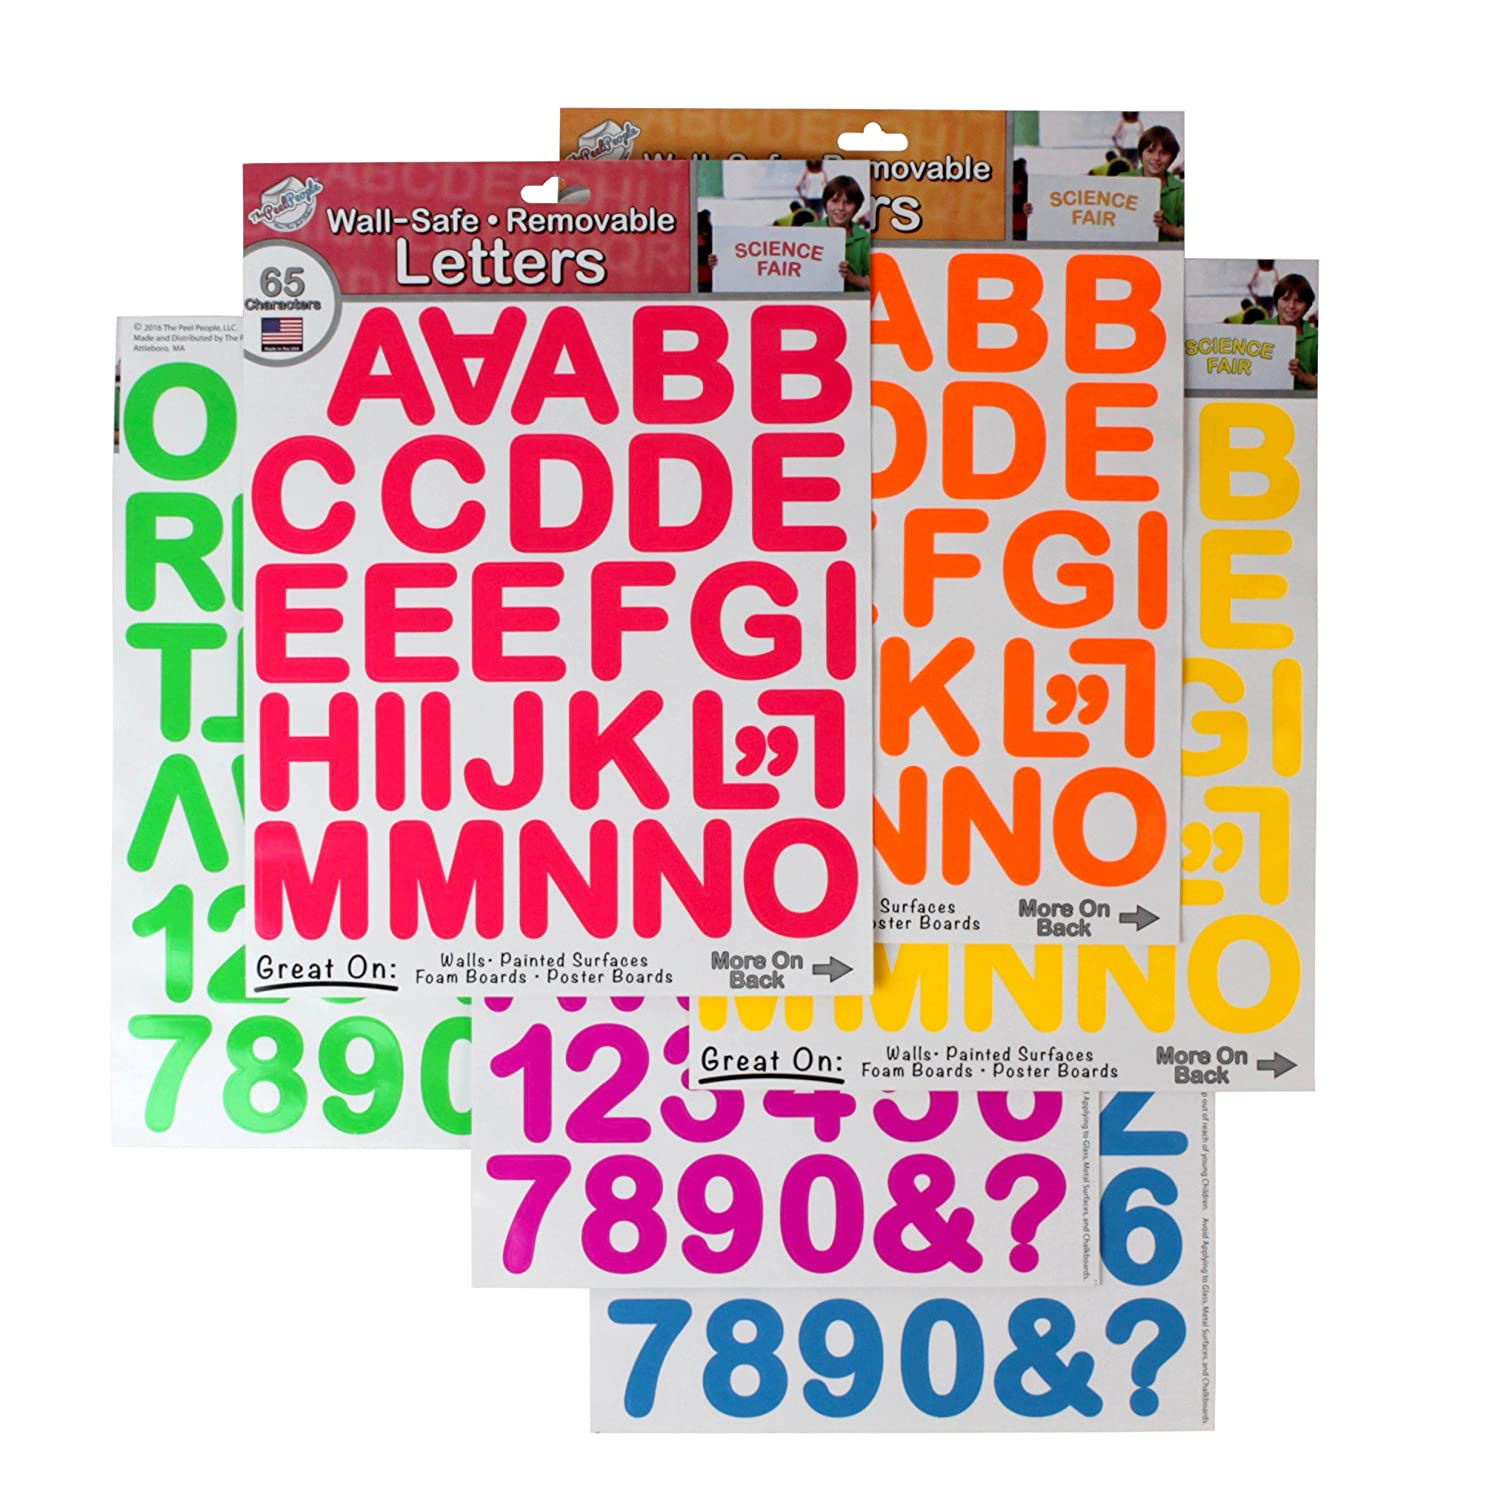 THE PEEL PEOPLE Wall-Safe Removable Letters & Numbers - Neon (390 Total Stickers)